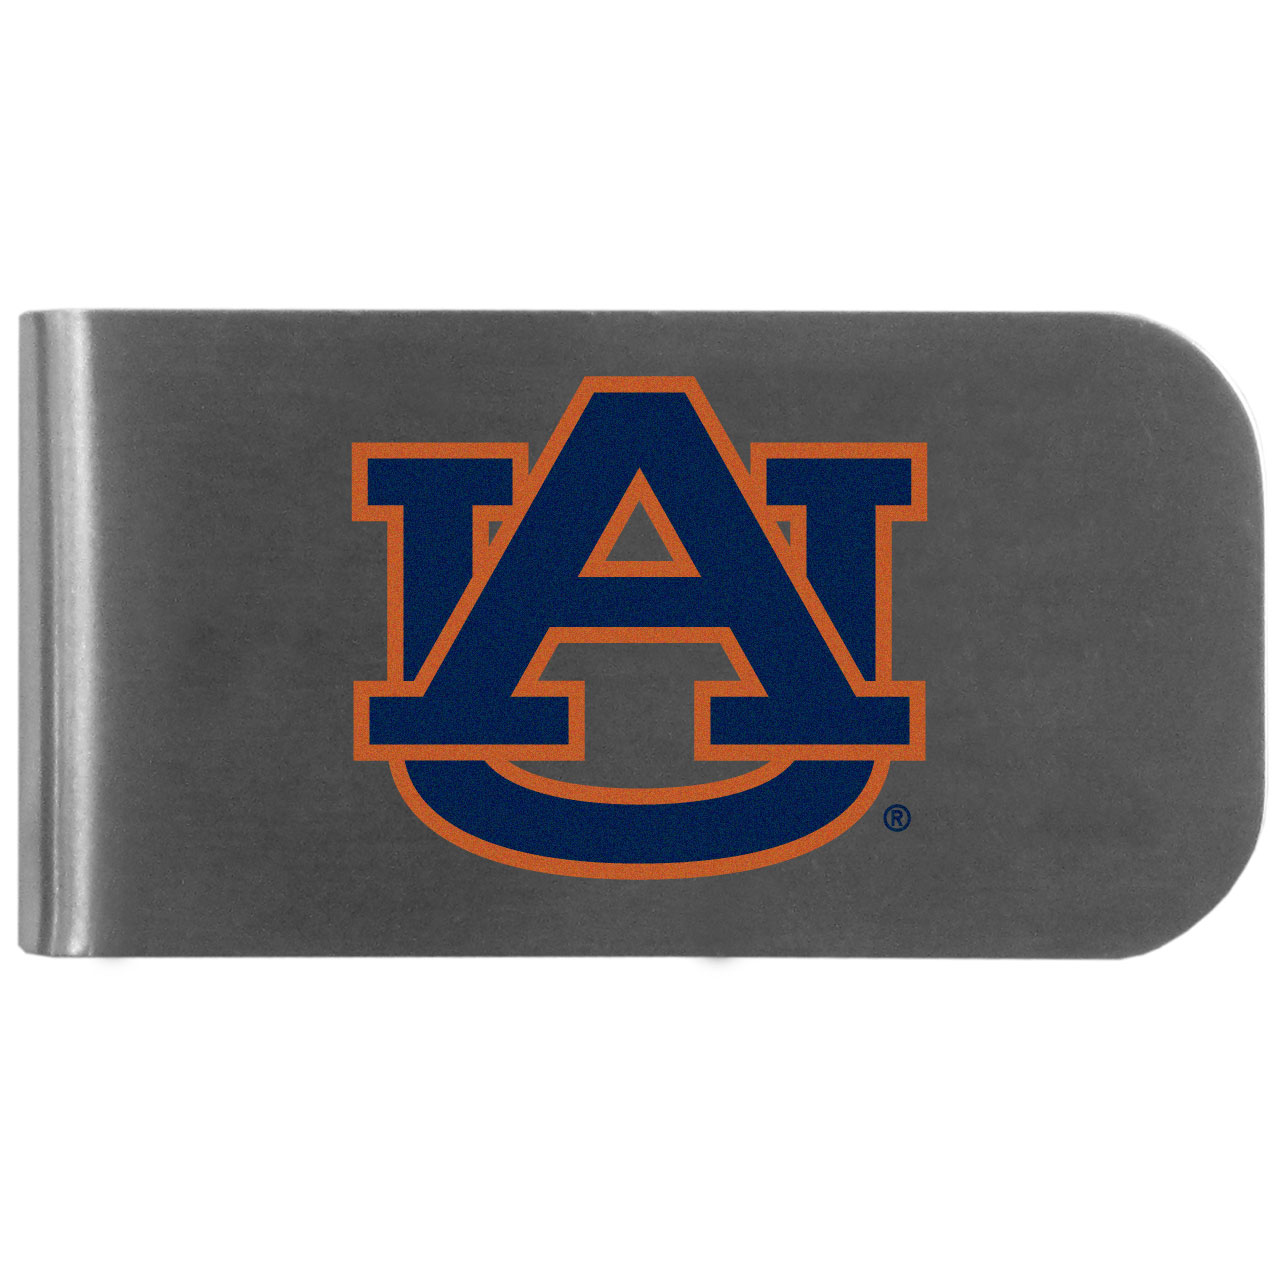 Auburn Tigers Logo Bottle Opener Money Clip - This unique money clip features a classic, brushed-metal finish with a handy bottle opener feature on the back. The clip has the Auburn Tigers logo expertly printed on the front of the clip.